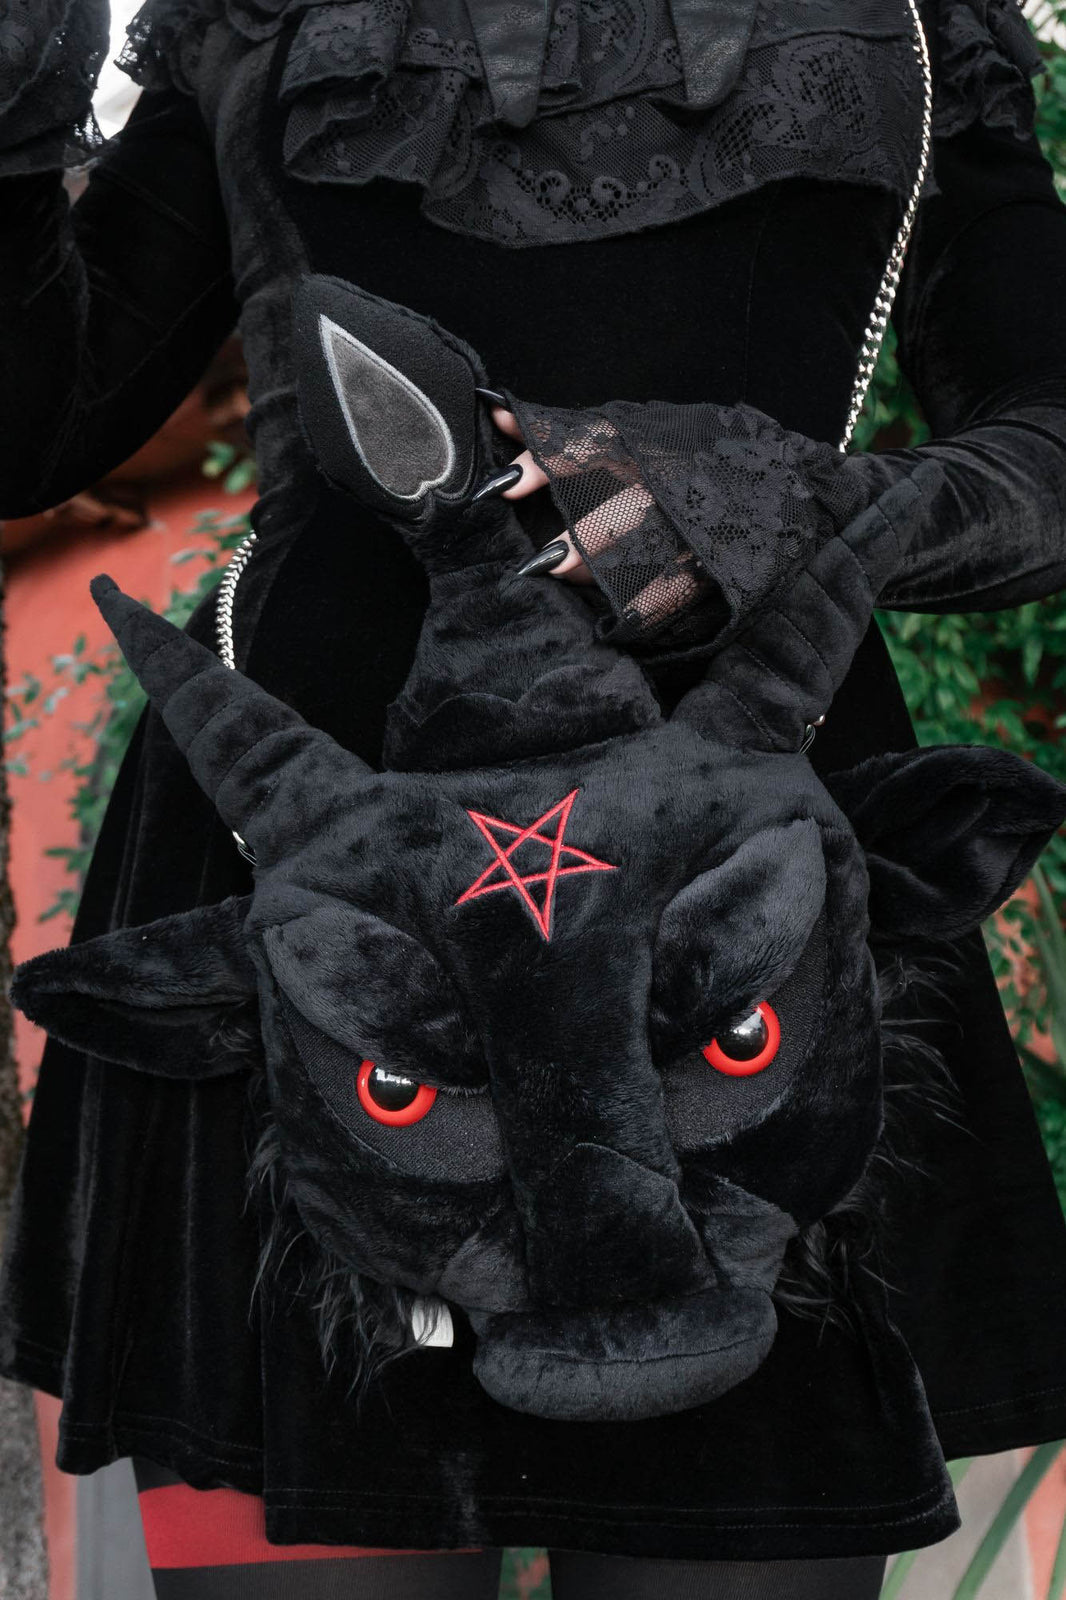 Dark Lord Handbag